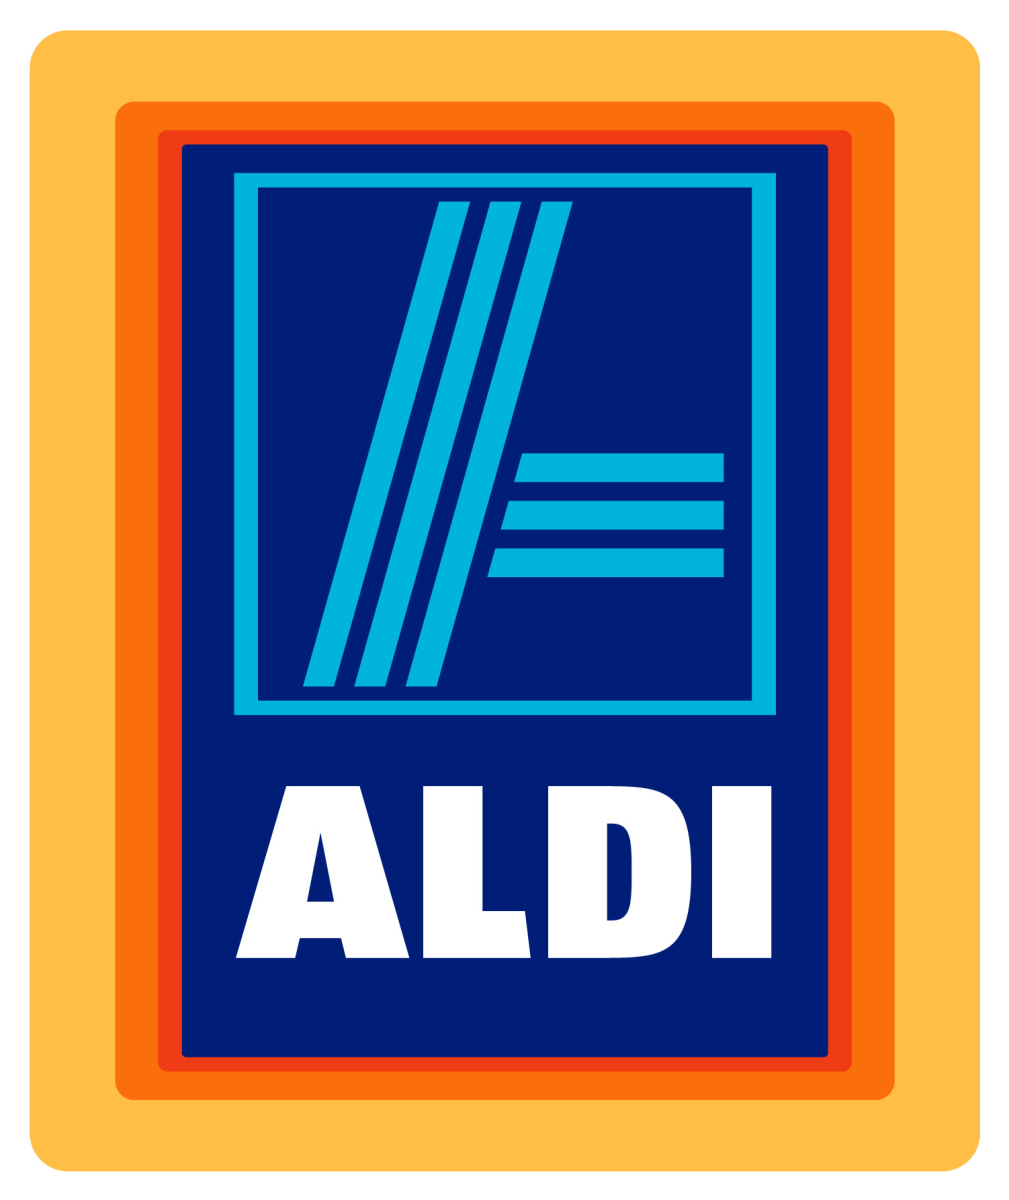 250+ Grocery Items That You Can Buy at Aldi for $1.19 or Less